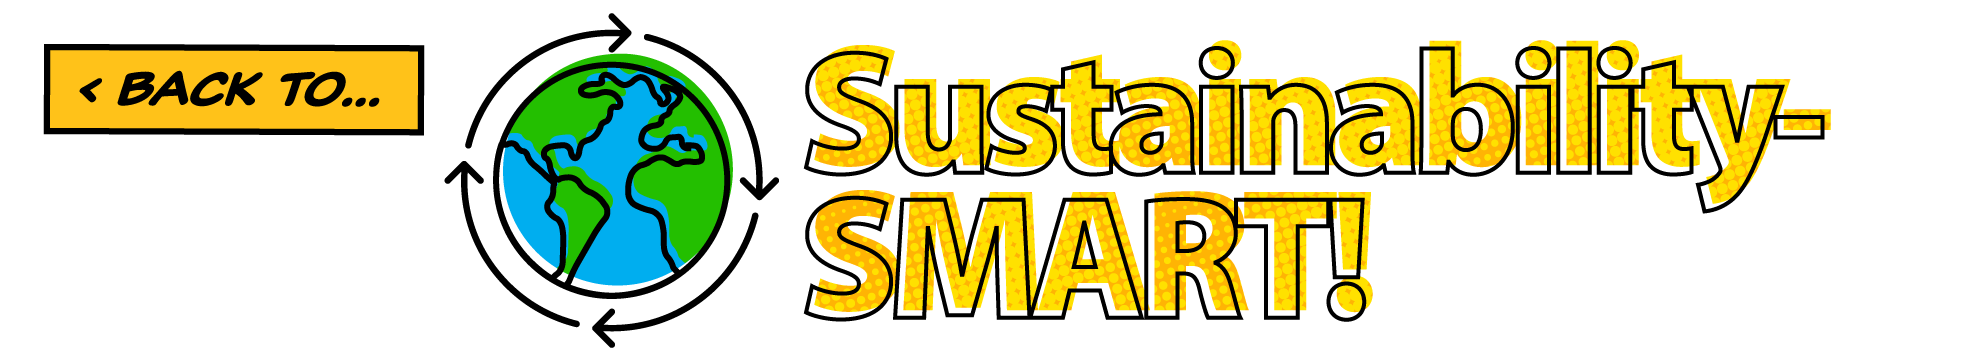 Back to… Sustainability-SMART!